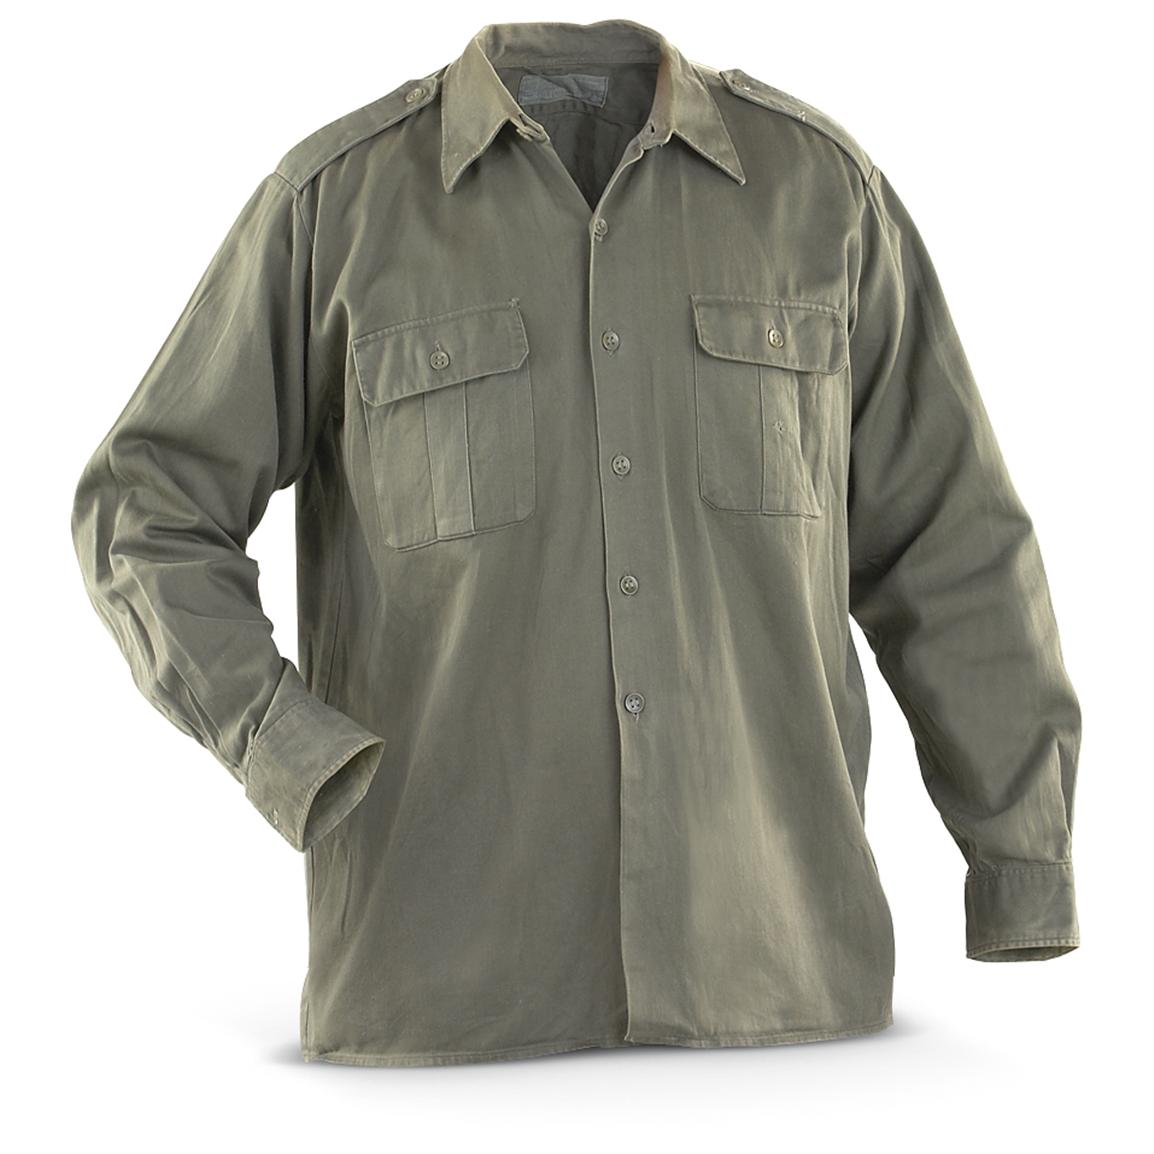 2-Pk. of Used Serbian Military Surplus Field Shirts, Olive Drab